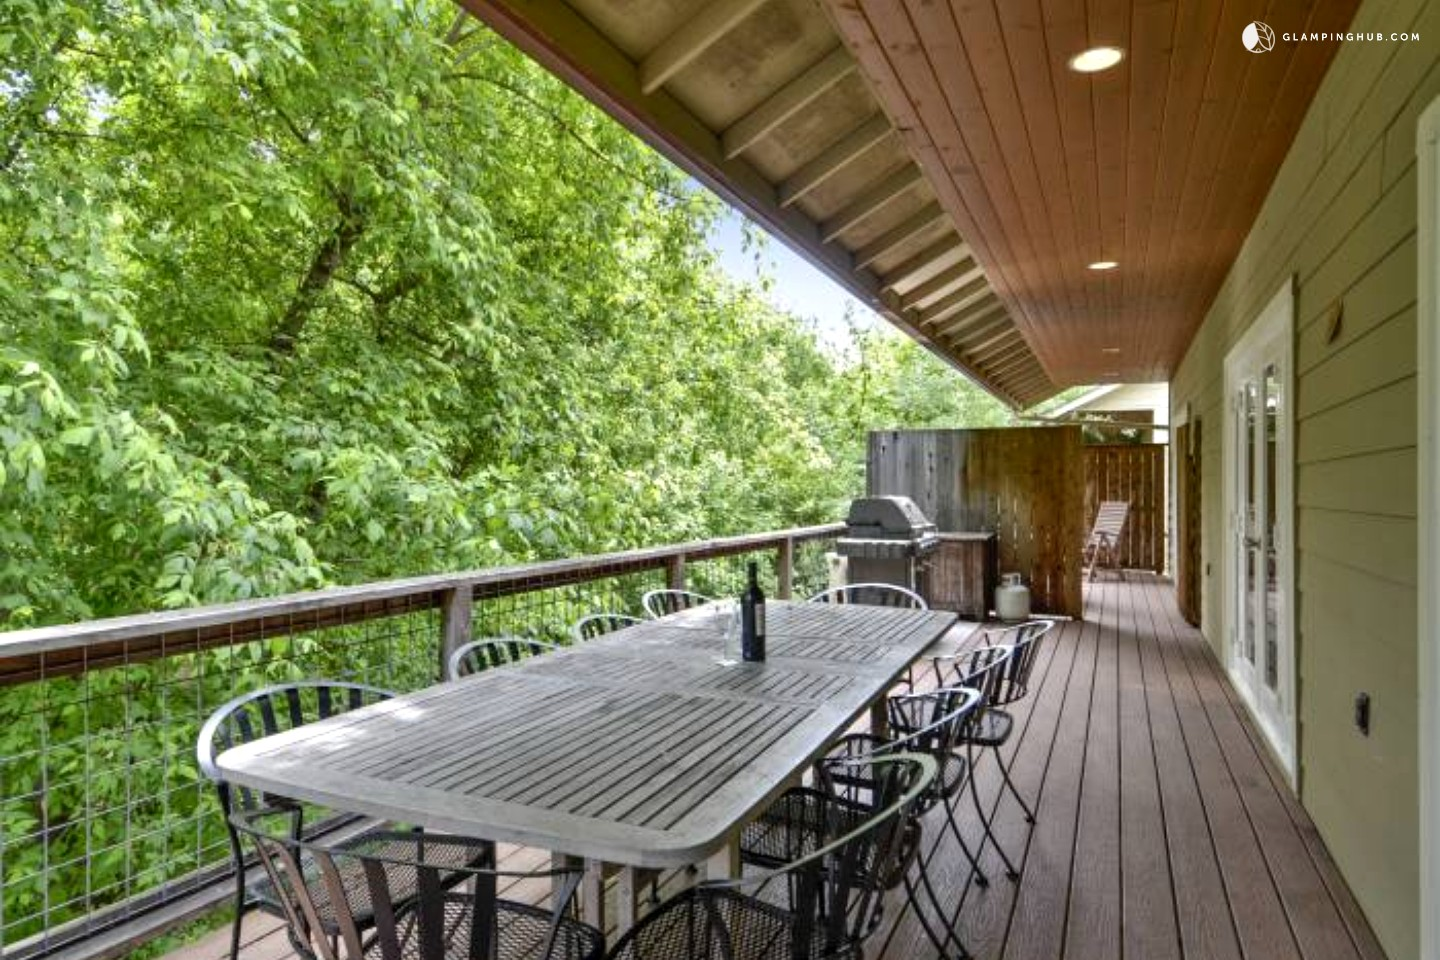 Vacation Rental In Guerneville, California